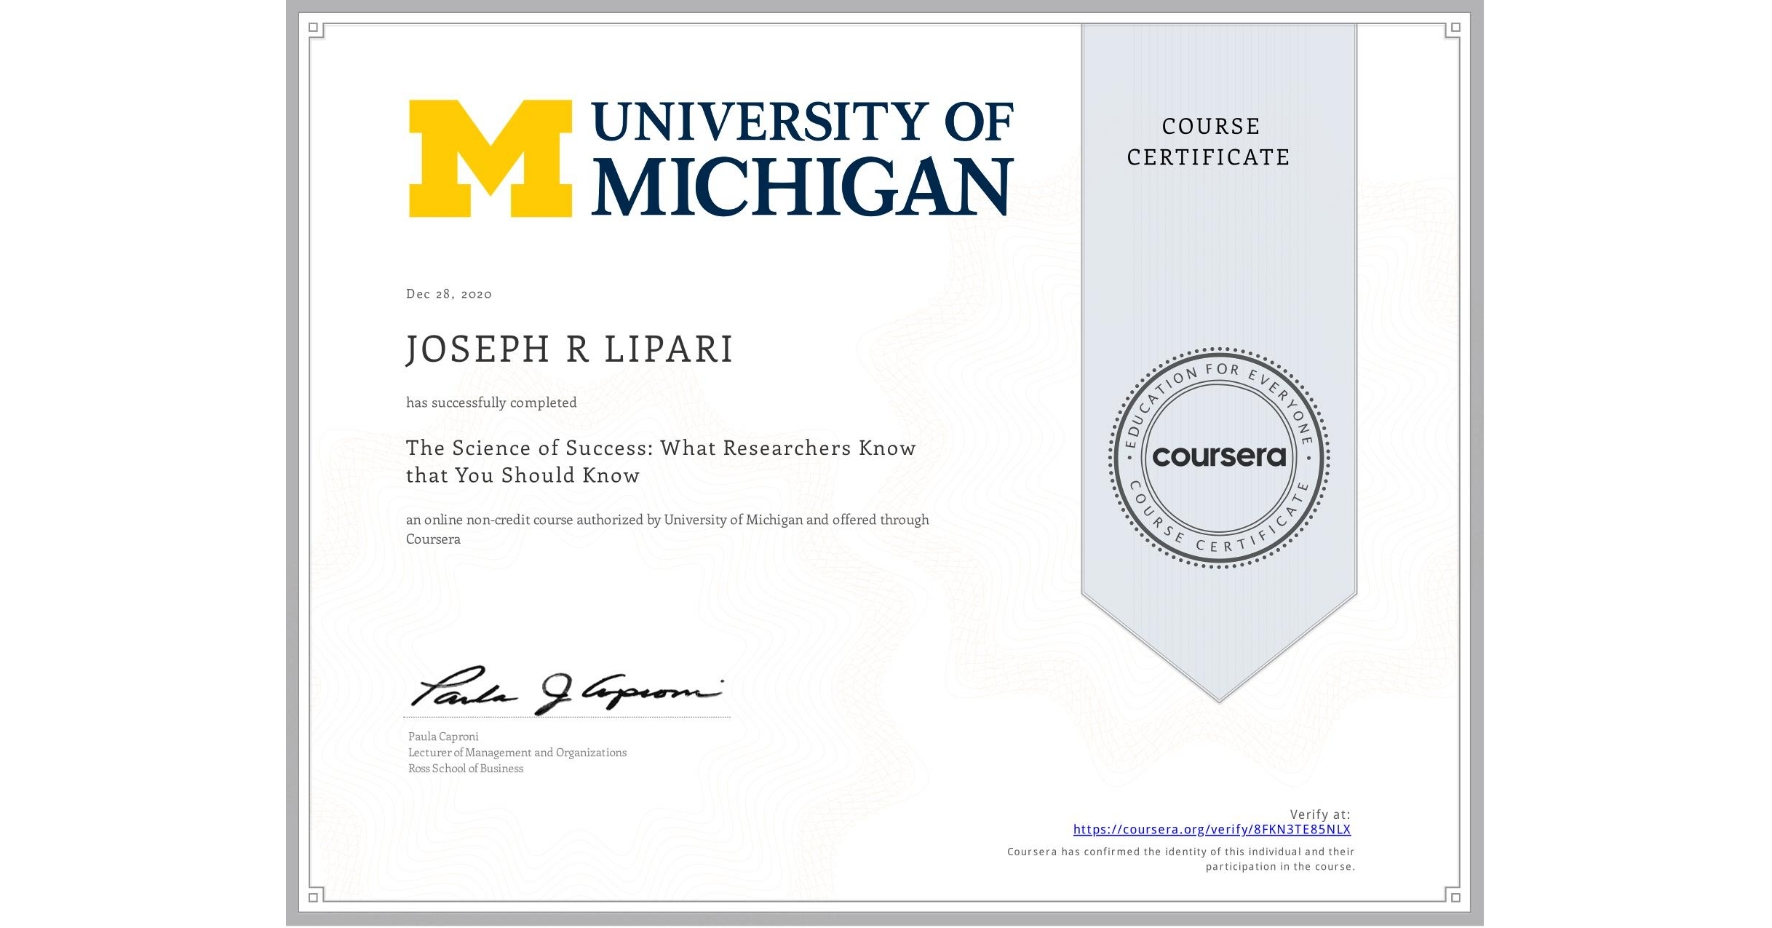 View certificate for JOSEPH R  LIPARI, The Science of Success: What Researchers Know that You Should Know, an online non-credit course authorized by University of Michigan and offered through Coursera